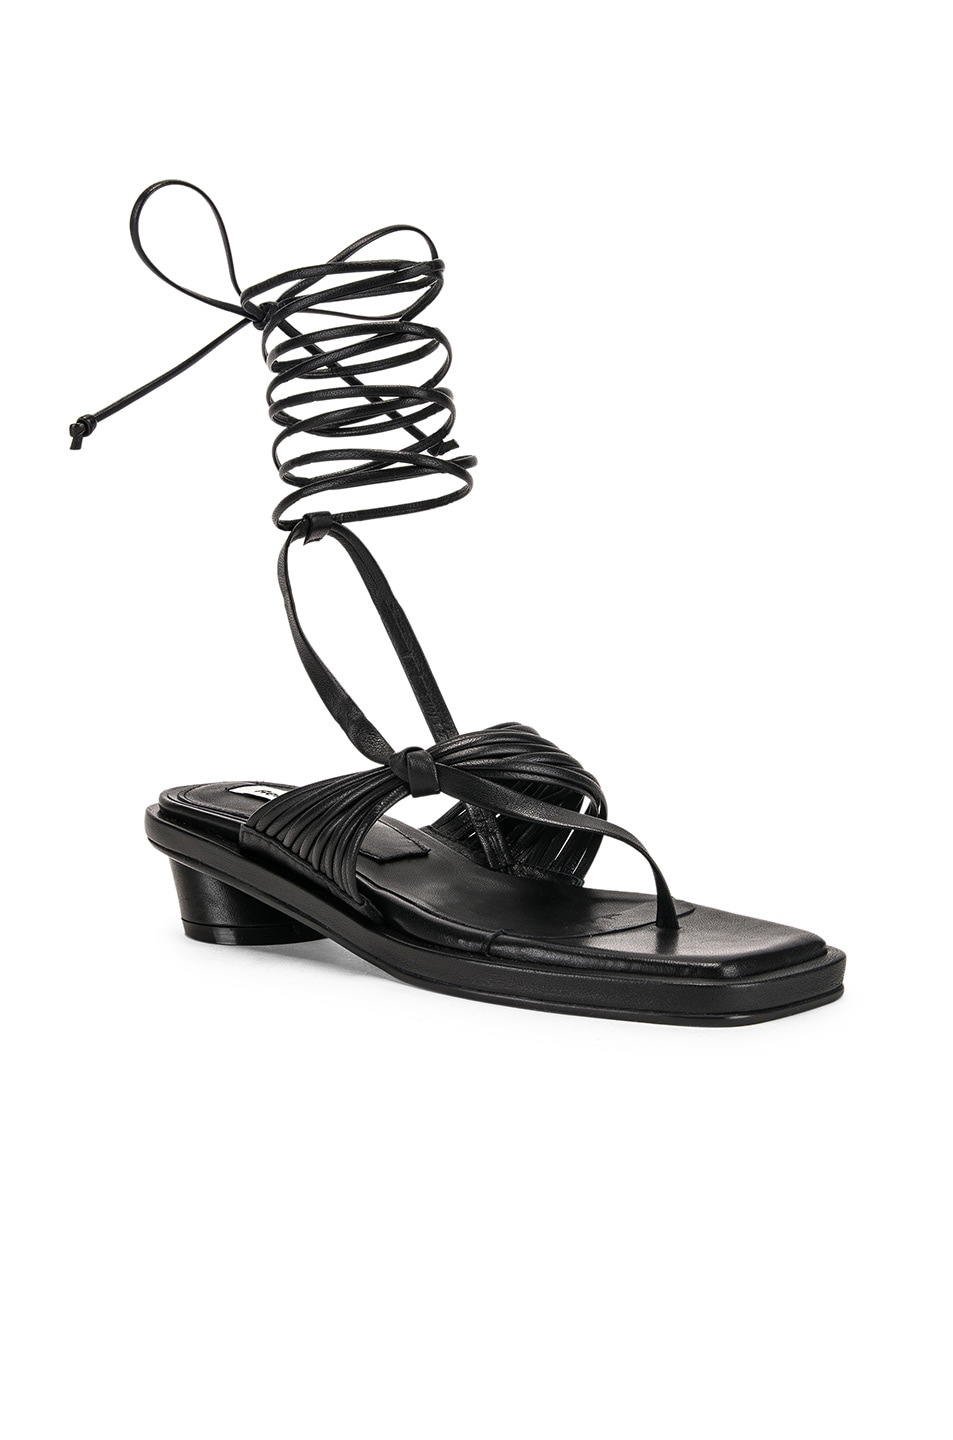 Image 3 of Reike Nen Unbalanced String Sandal in Black